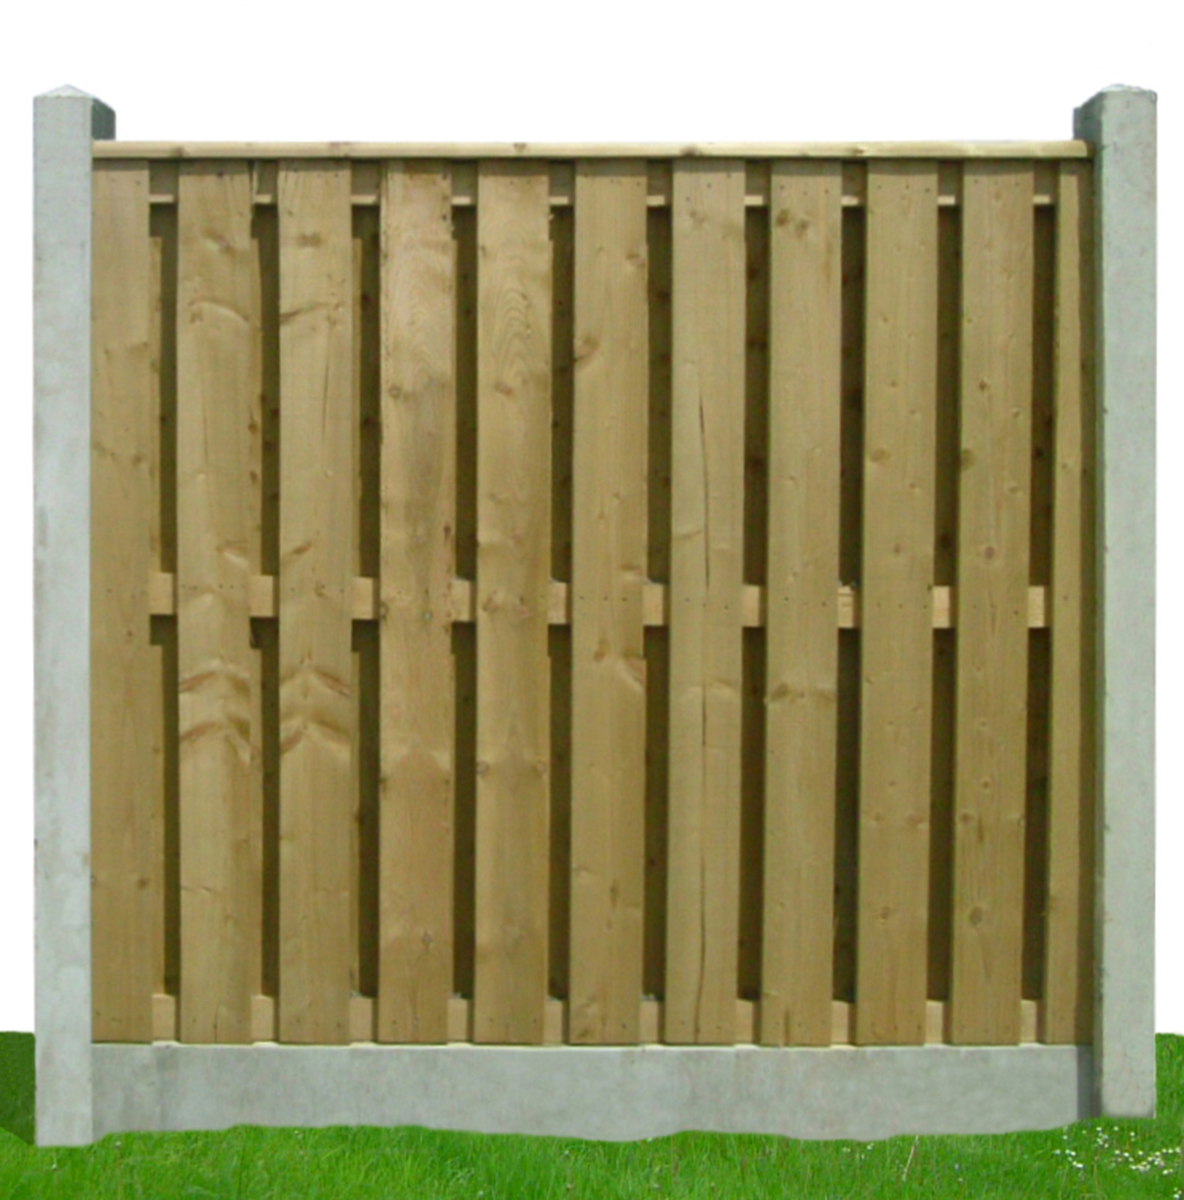 Fencing ireland dublin wicklow wexford sheds fencing garages fencing ireland dublin wicklow wexford sheds fencing garages shedworldwexford baanklon Gallery